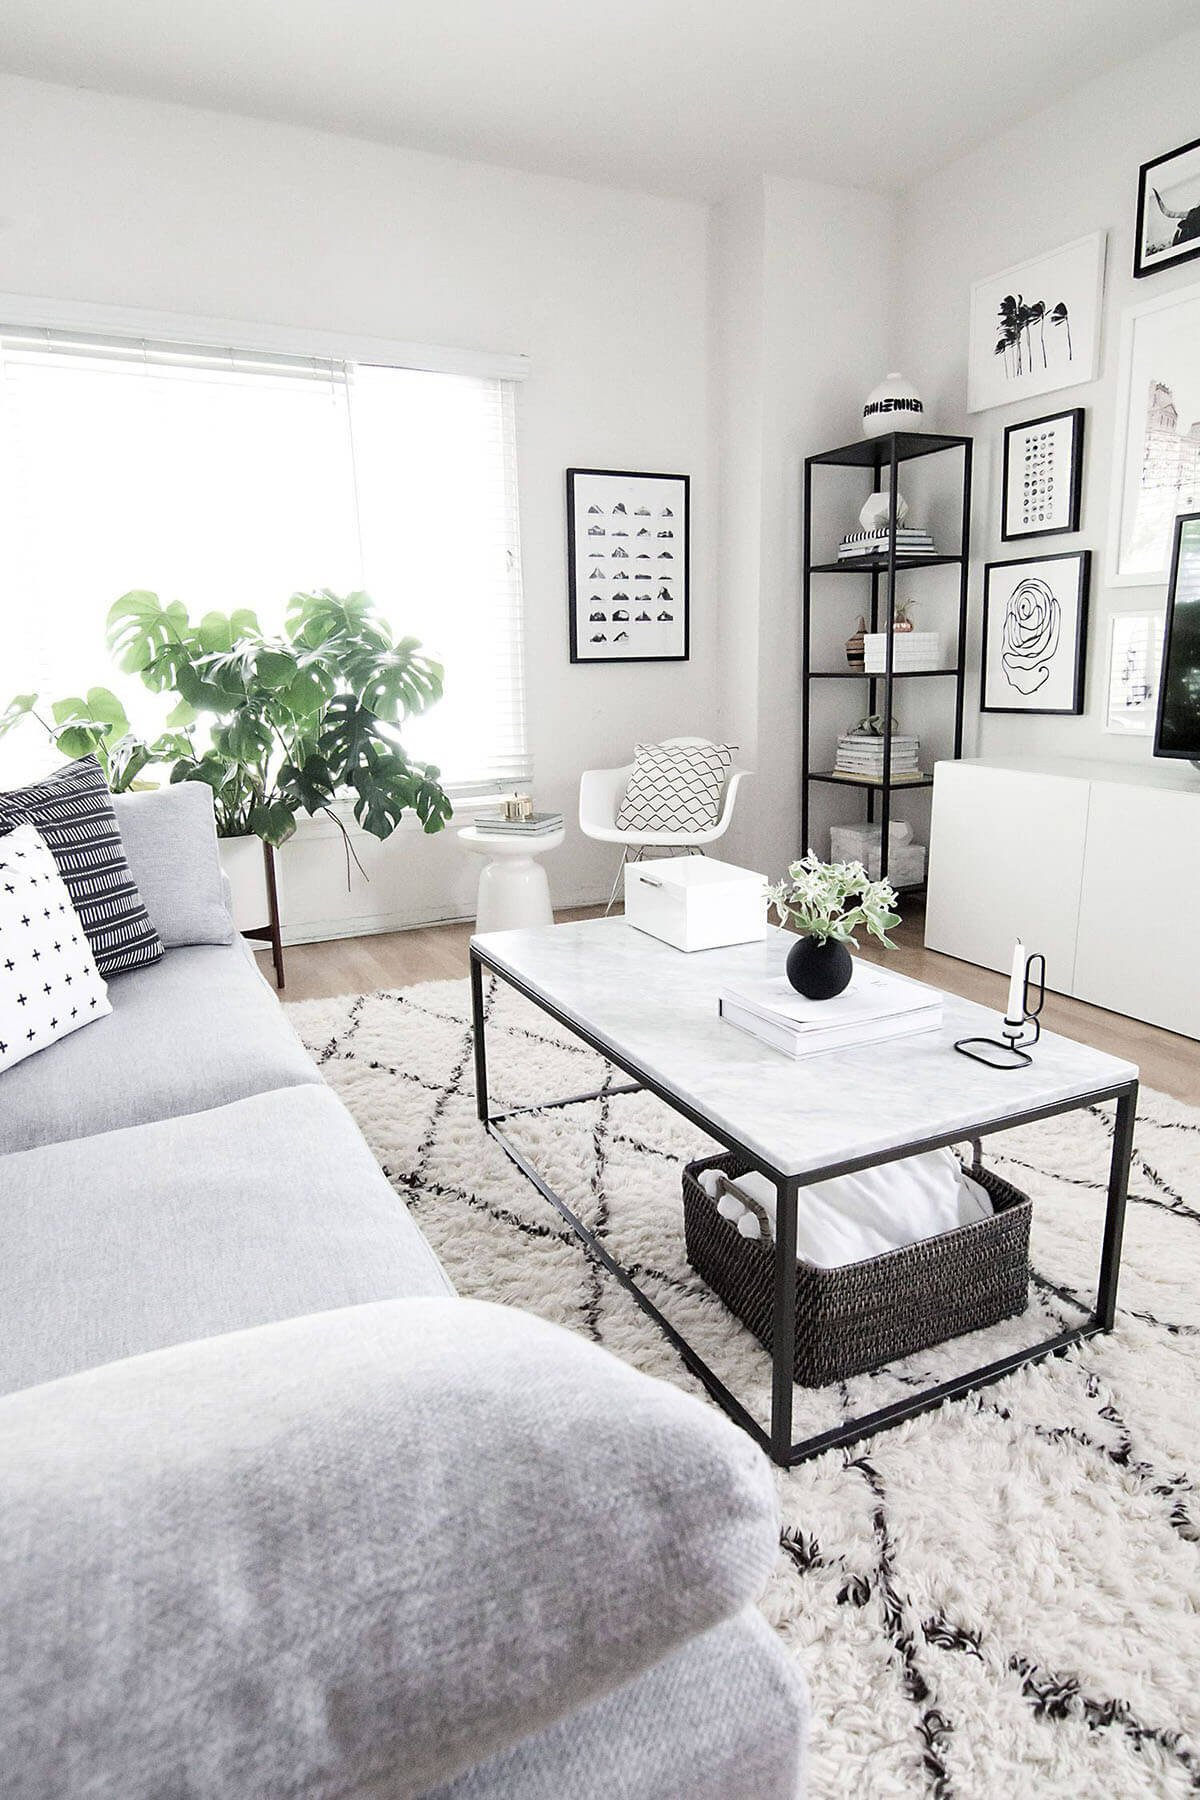 Small Gray Living Room Ideas Elegant 25 Best Small Living Room Decor and Design Ideas for 2019